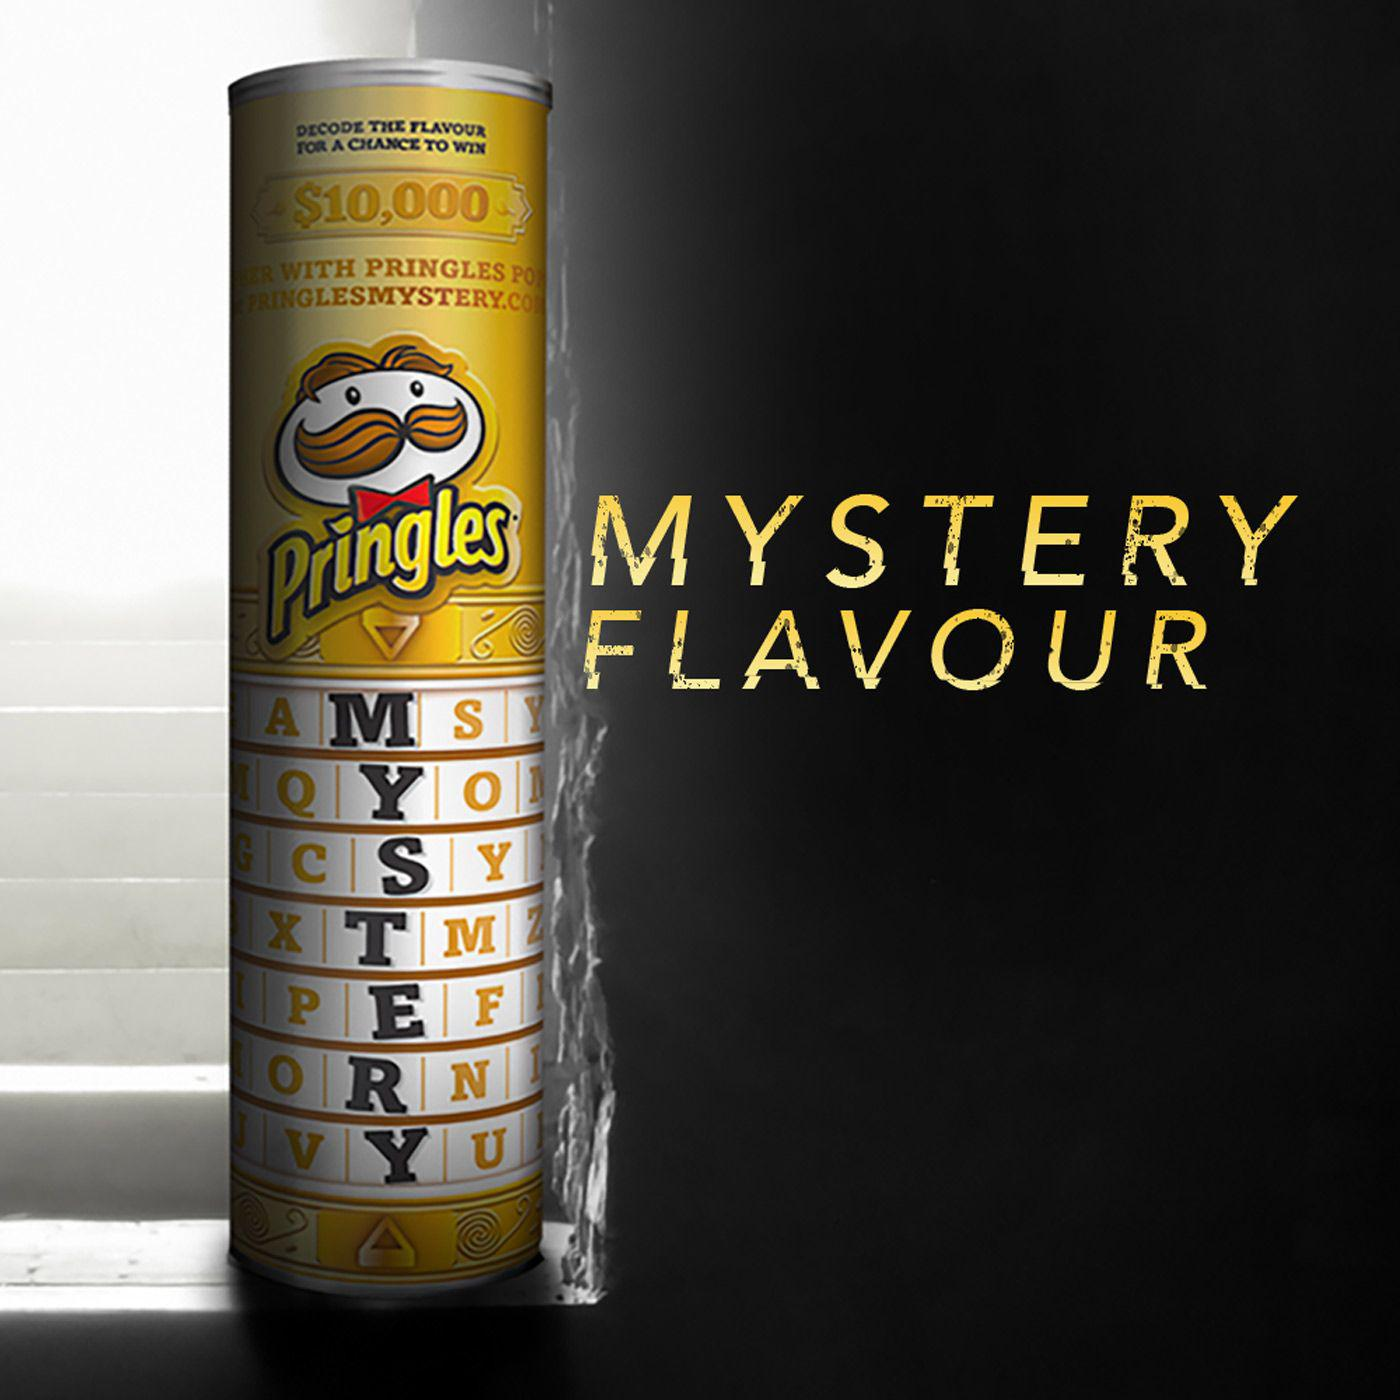 pringles mystery flavour 2019 answer